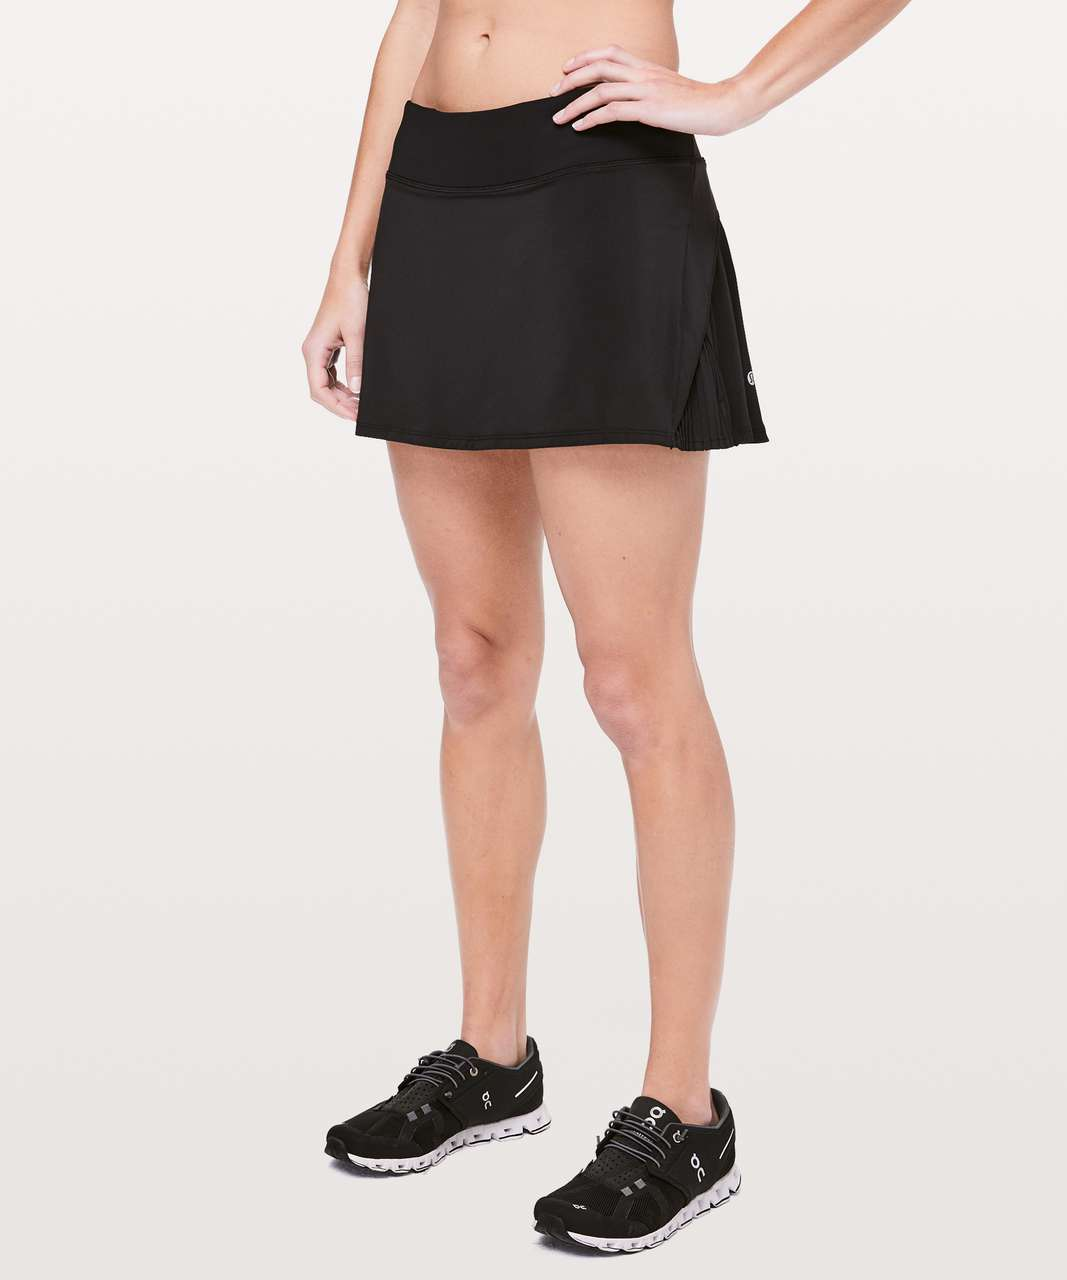 "Lululemon Play Off The Pleats Skirt *13"" - Black"